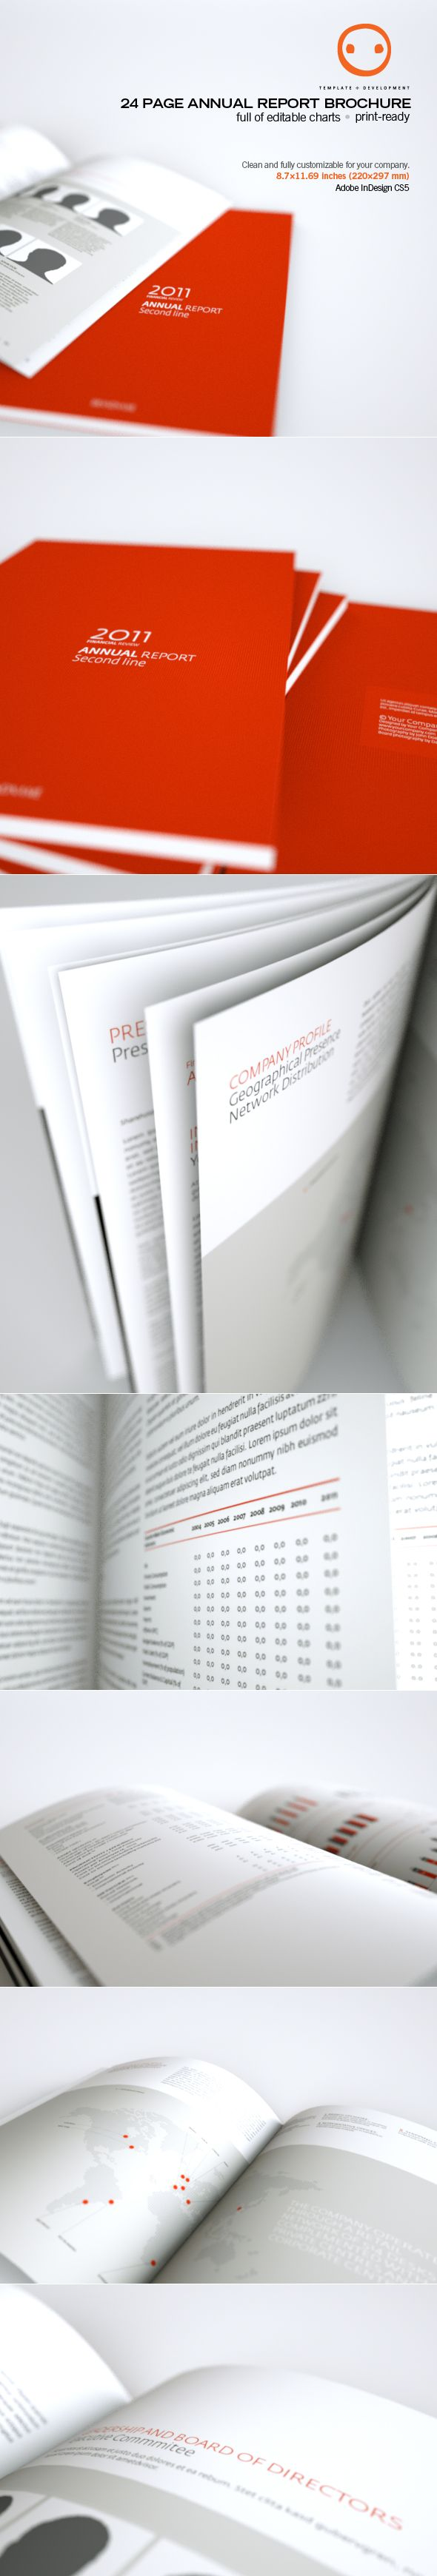 Annual Report Brochure - Brochures on Creattica: Your source for design inspiration